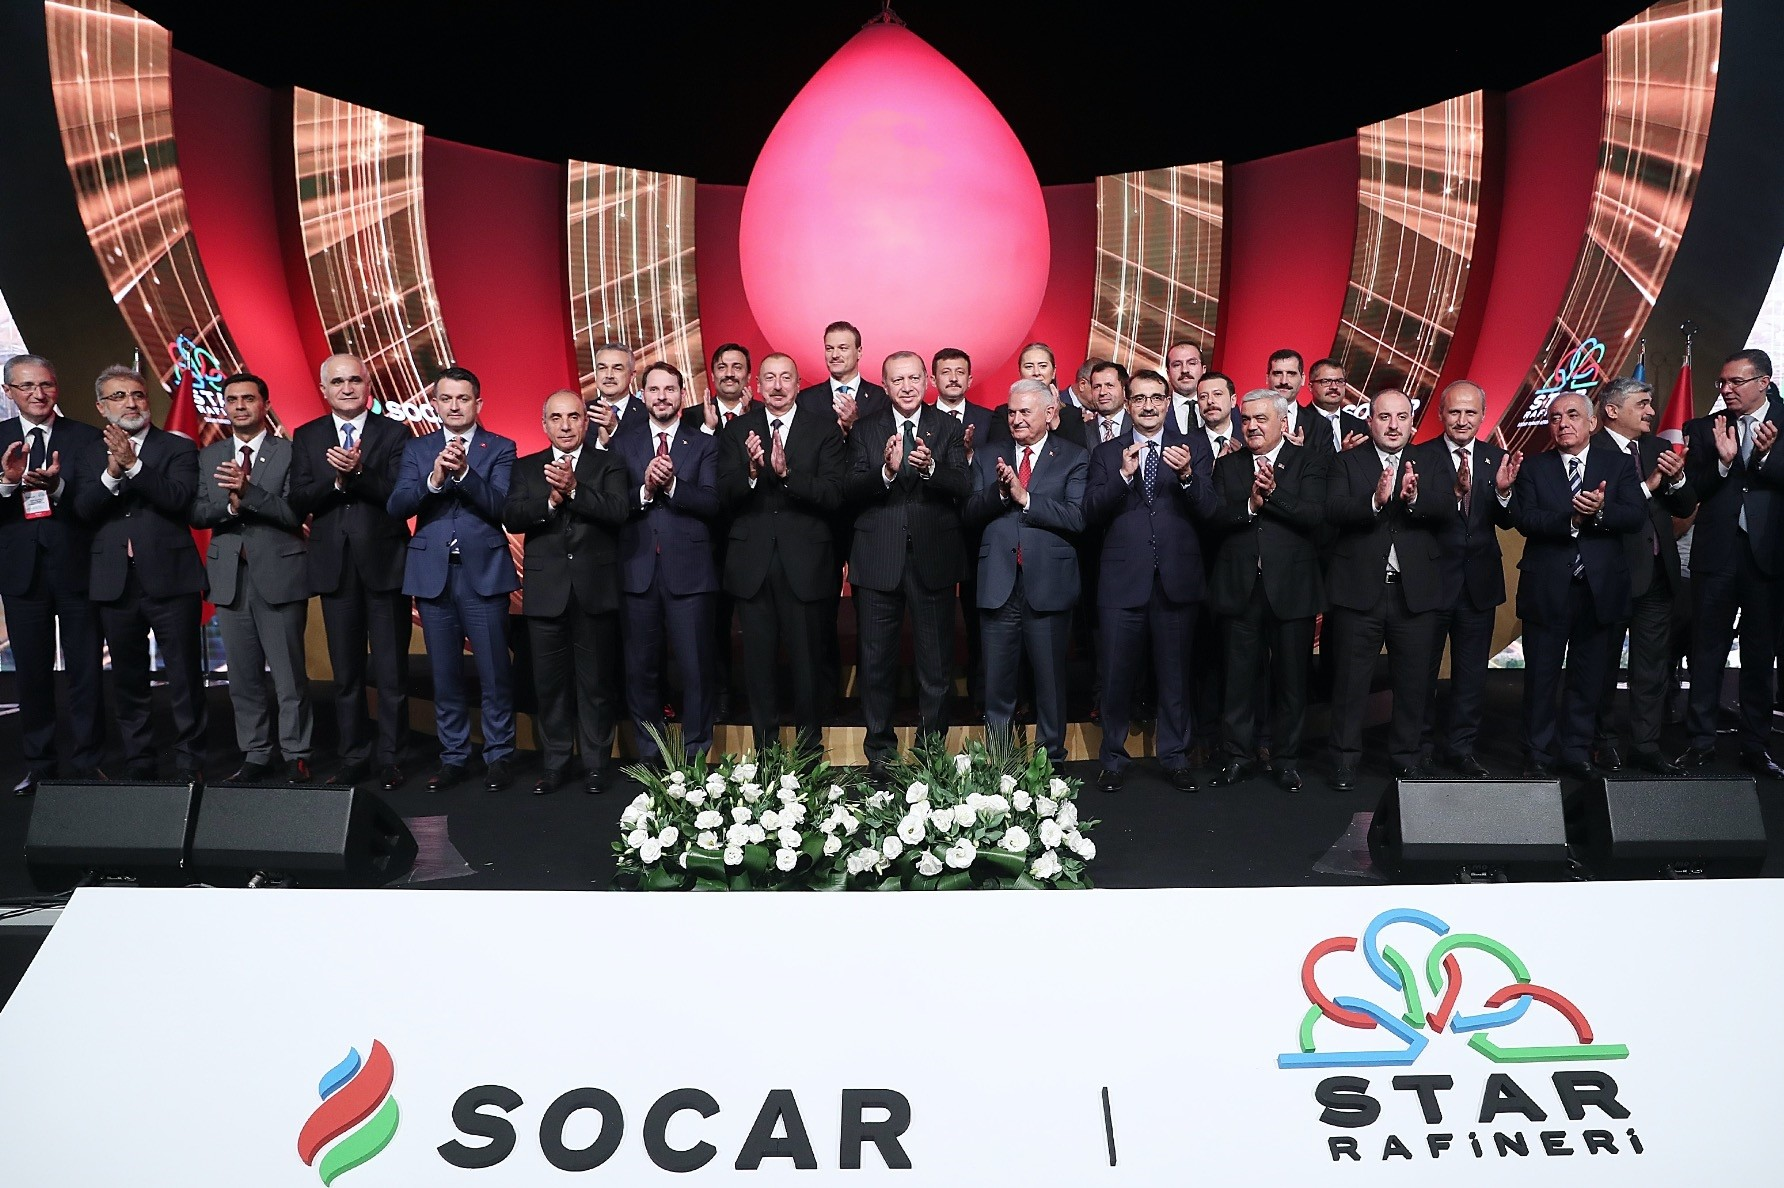 Presidents Erdou011fan (C), Aliyev (eighth from left), Treasury and Finance Minister Berat Albayrak (seventh from left) as well as many other top officials attend the inauguration ceremony of SOCARu2019s STAR oil refinery in u0130zmiru2019s Aliau011fa district, Oct. 19.